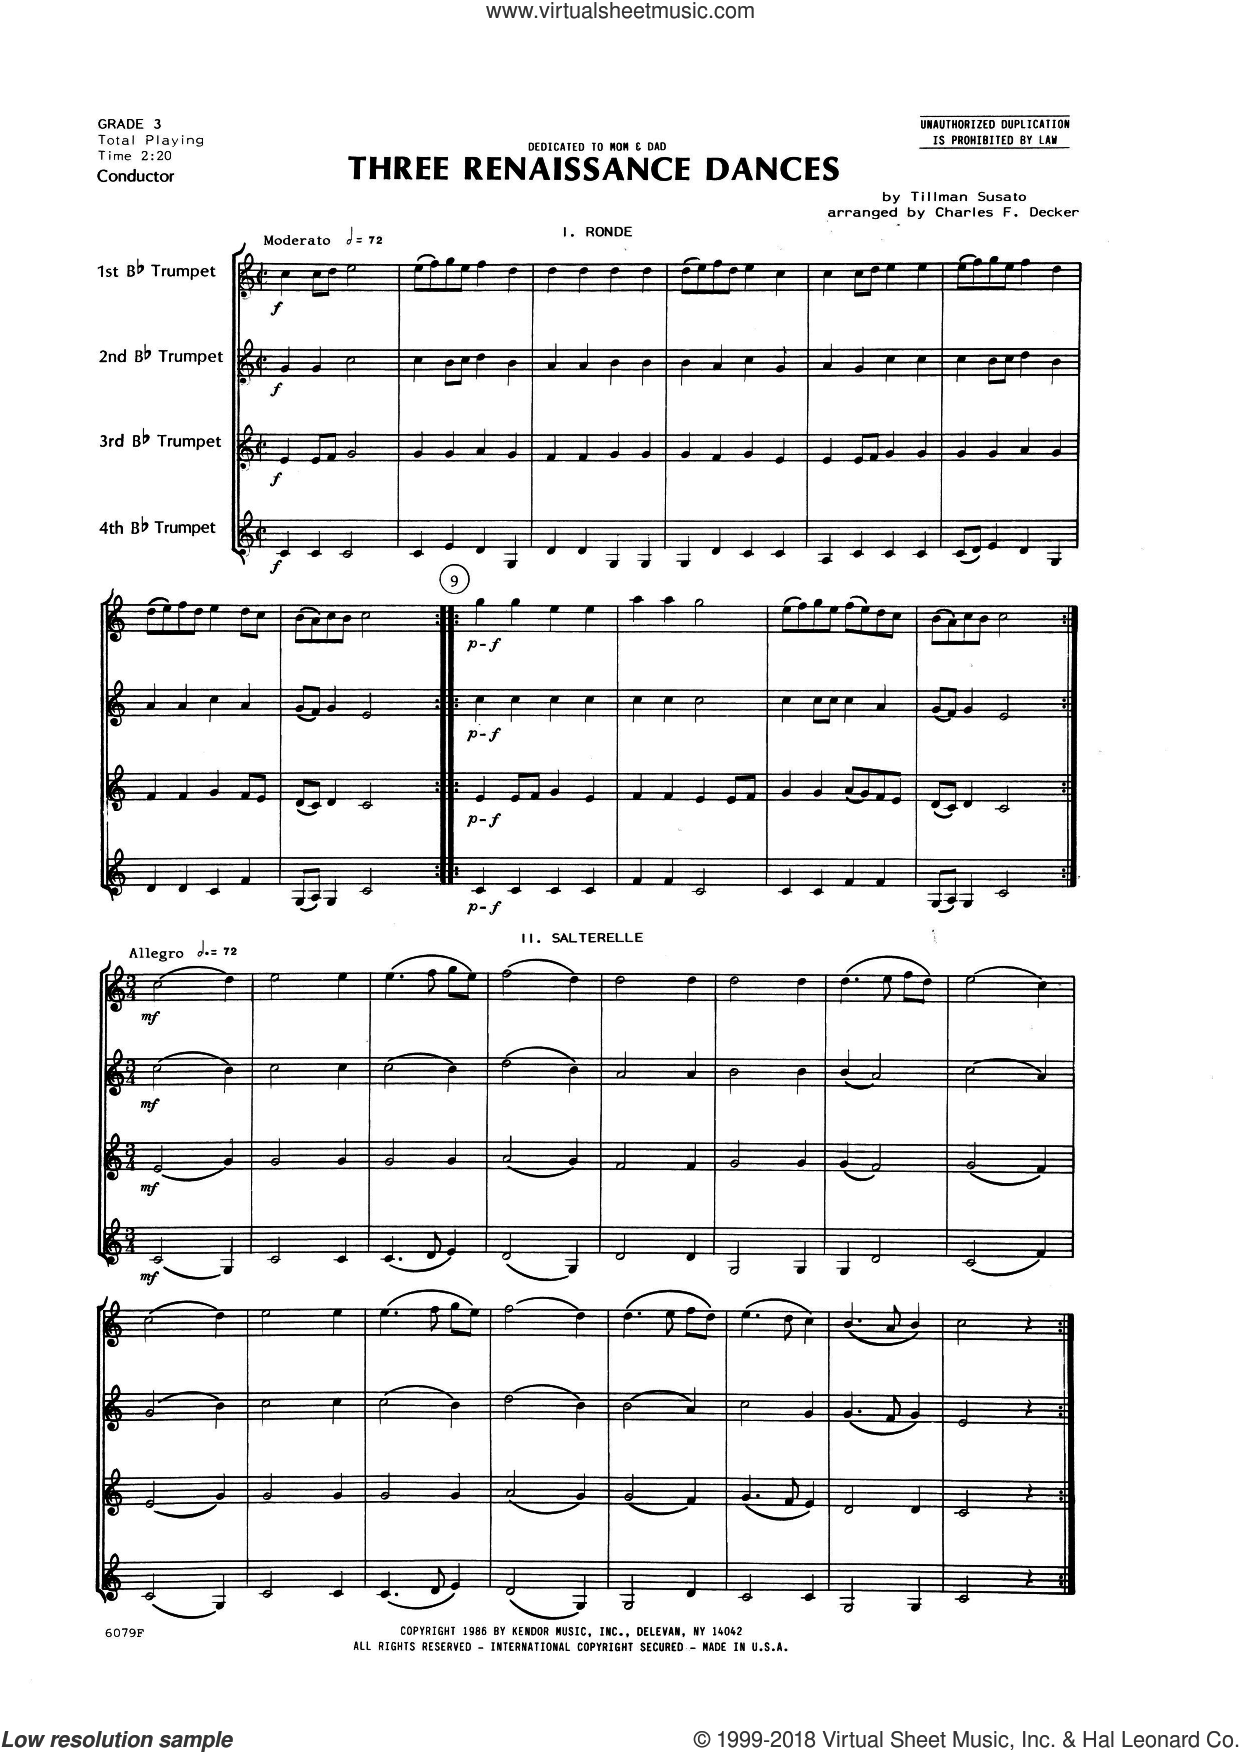 Three Renaissance Dances (From Het Derde Musyk Boexcken (The Third Little Music Book), 1551) (COMPLETE) sheet music for trumpet quartet by Charles Decker, intermediate. Score Image Preview.